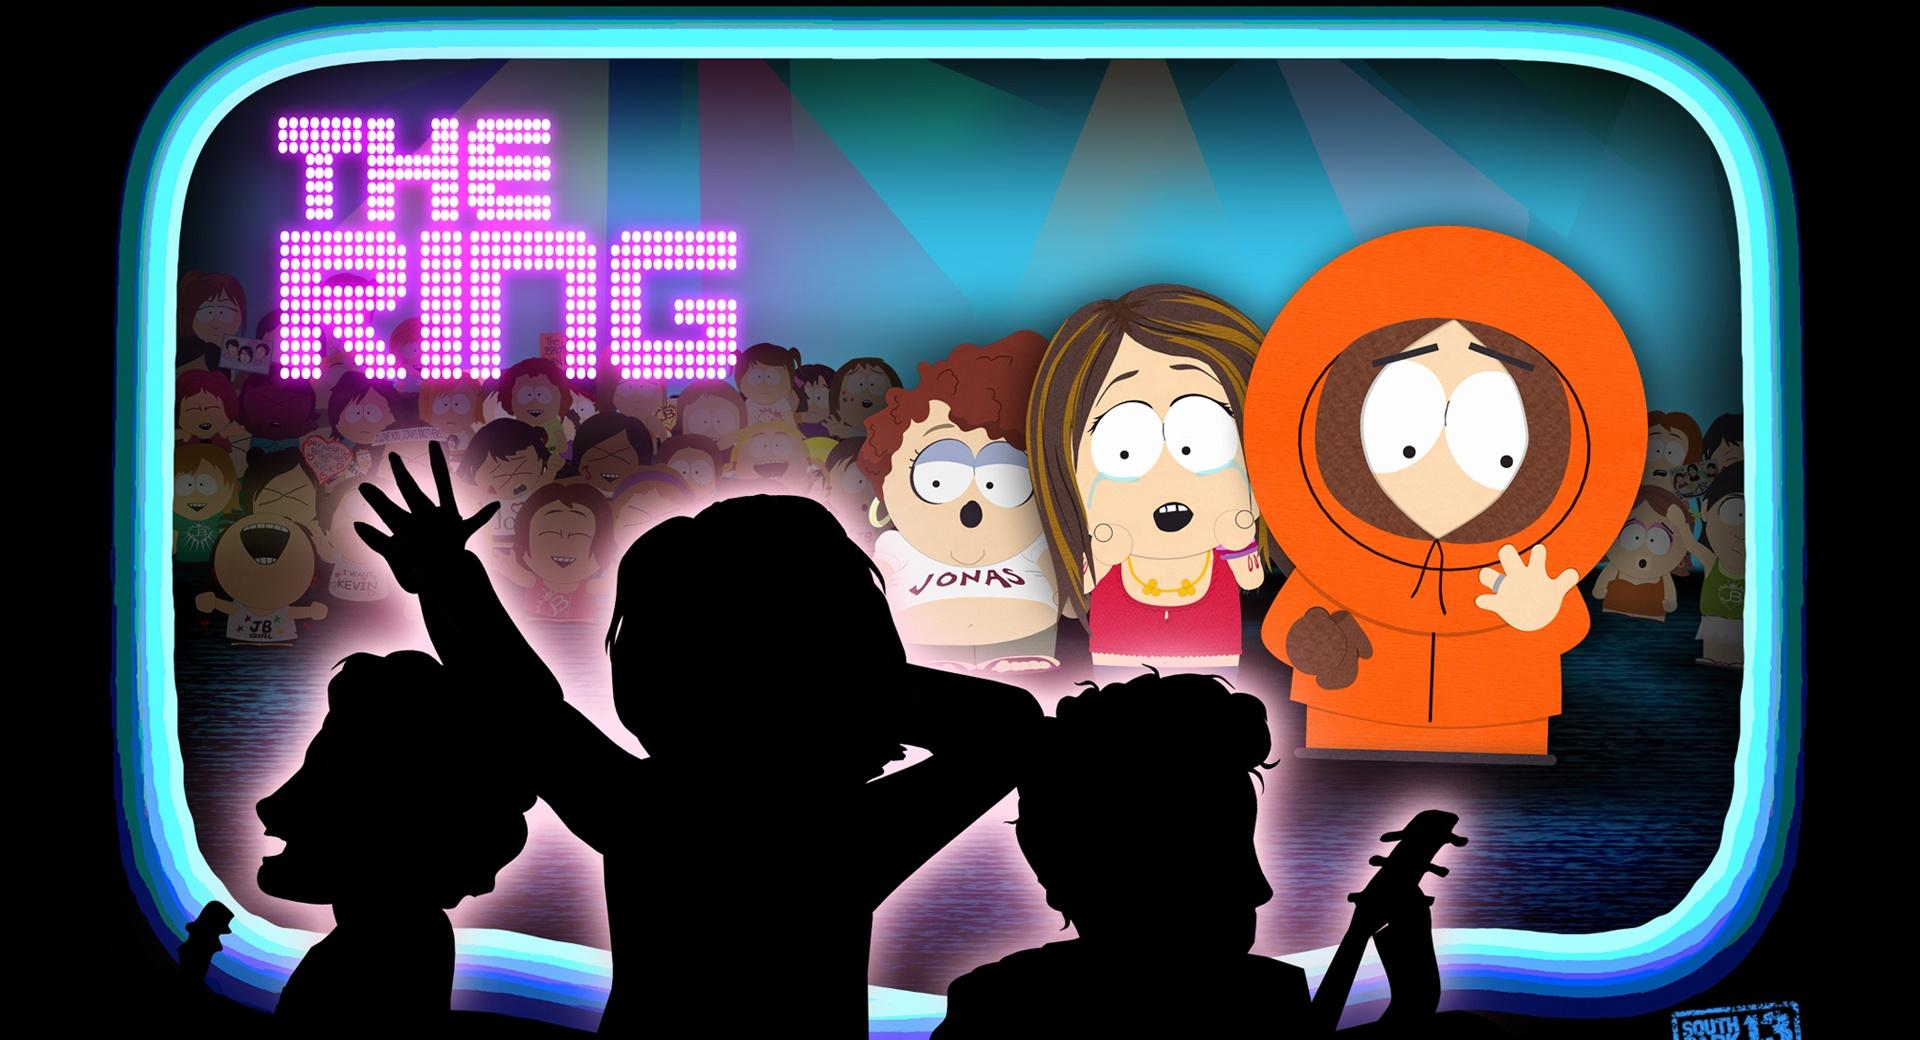 South Park - The Ring wallpapers HD quality